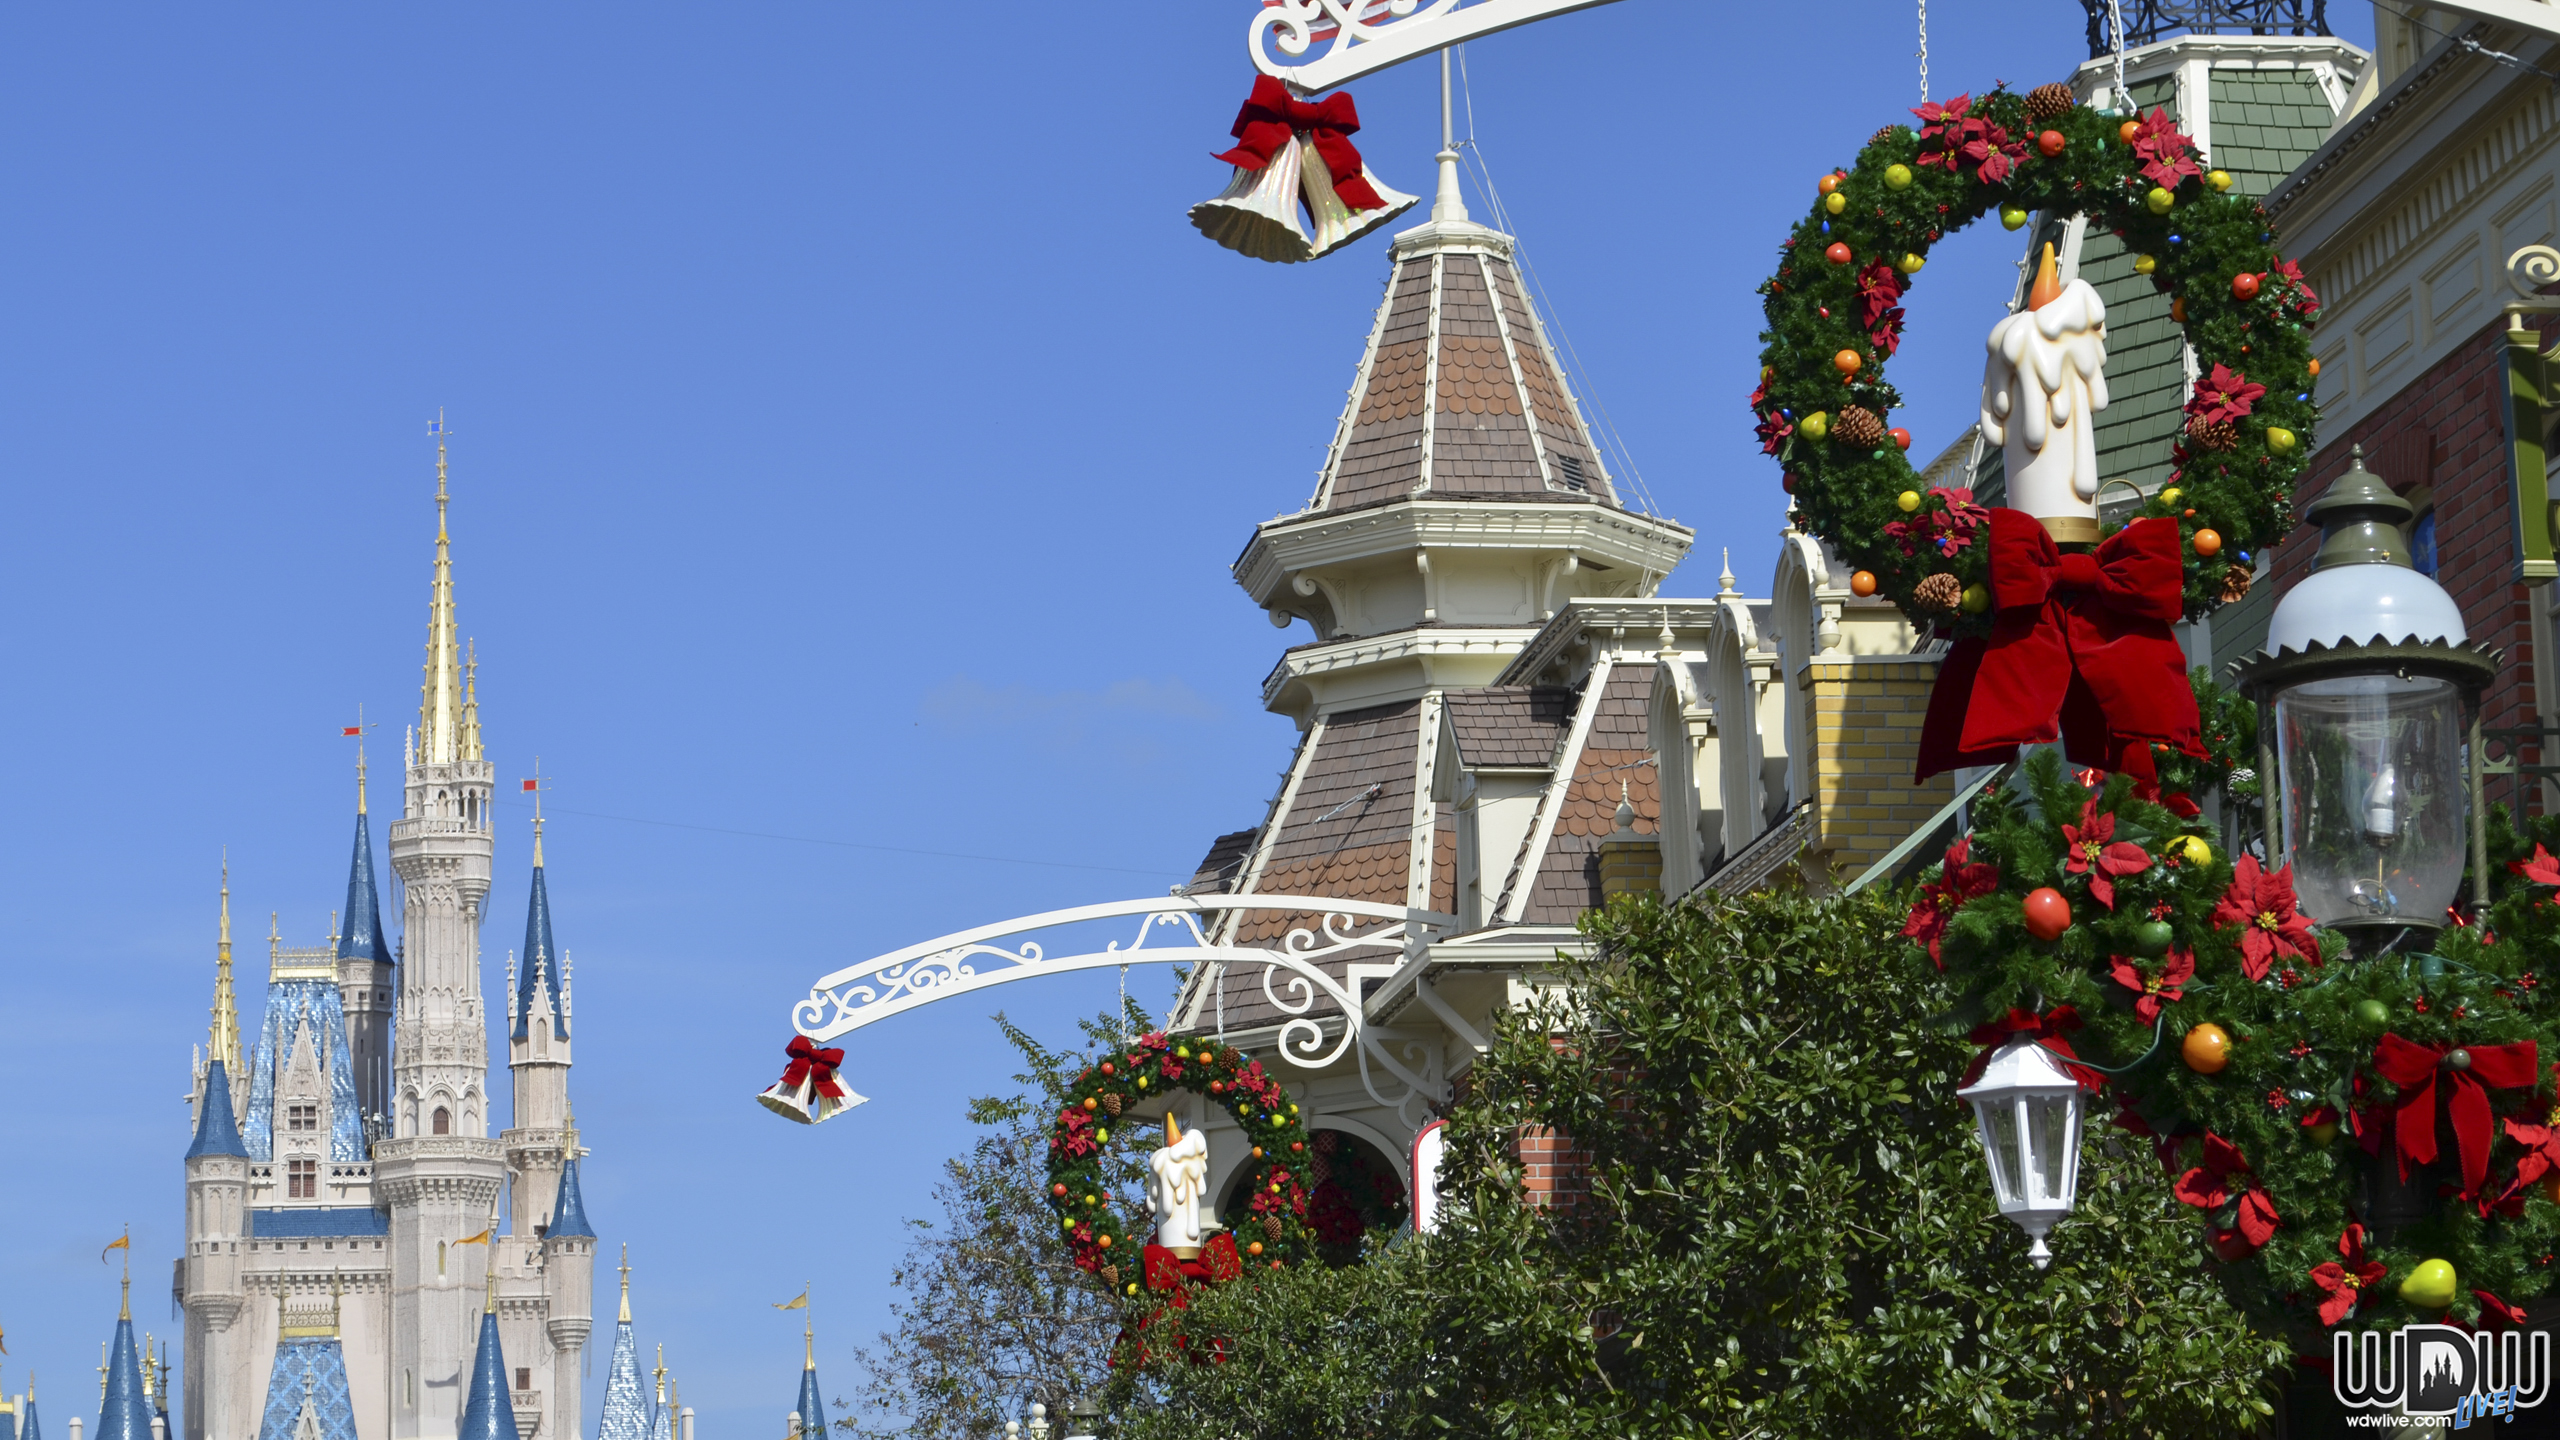 Related For Magic Kingdom Christmas Wallpaper, Hd Wallpapers